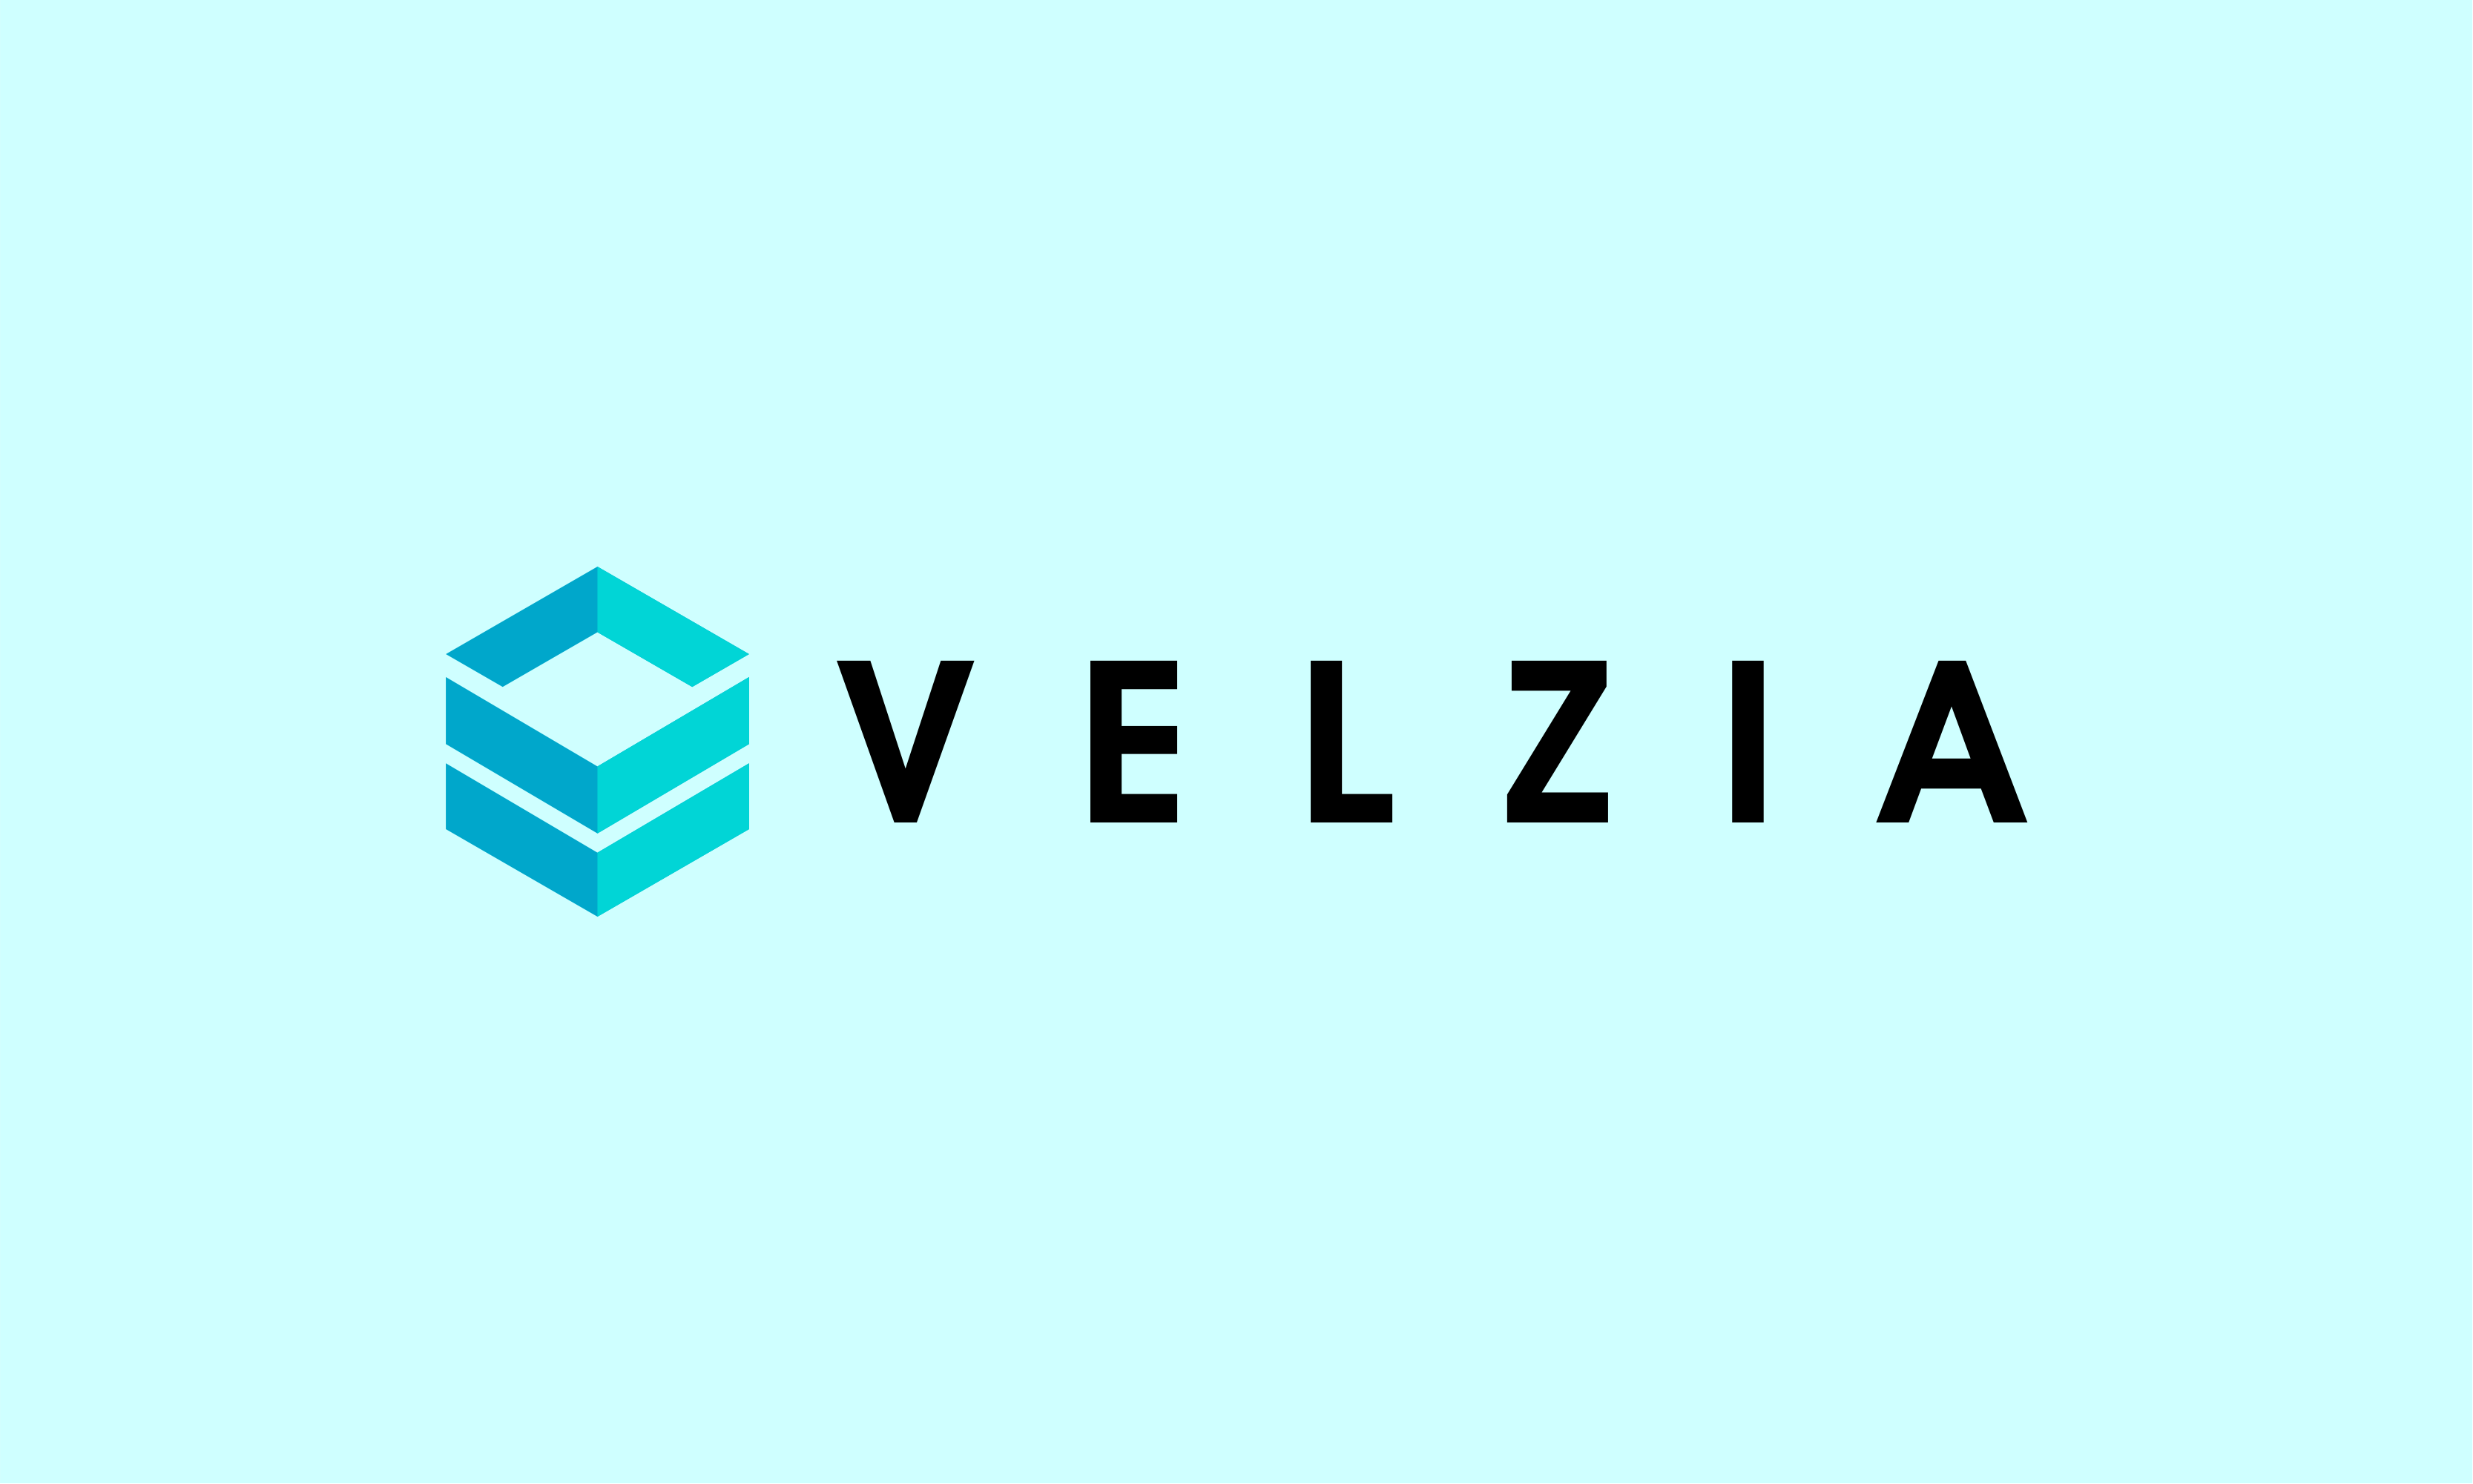 Velzia - Friendly business name for sale